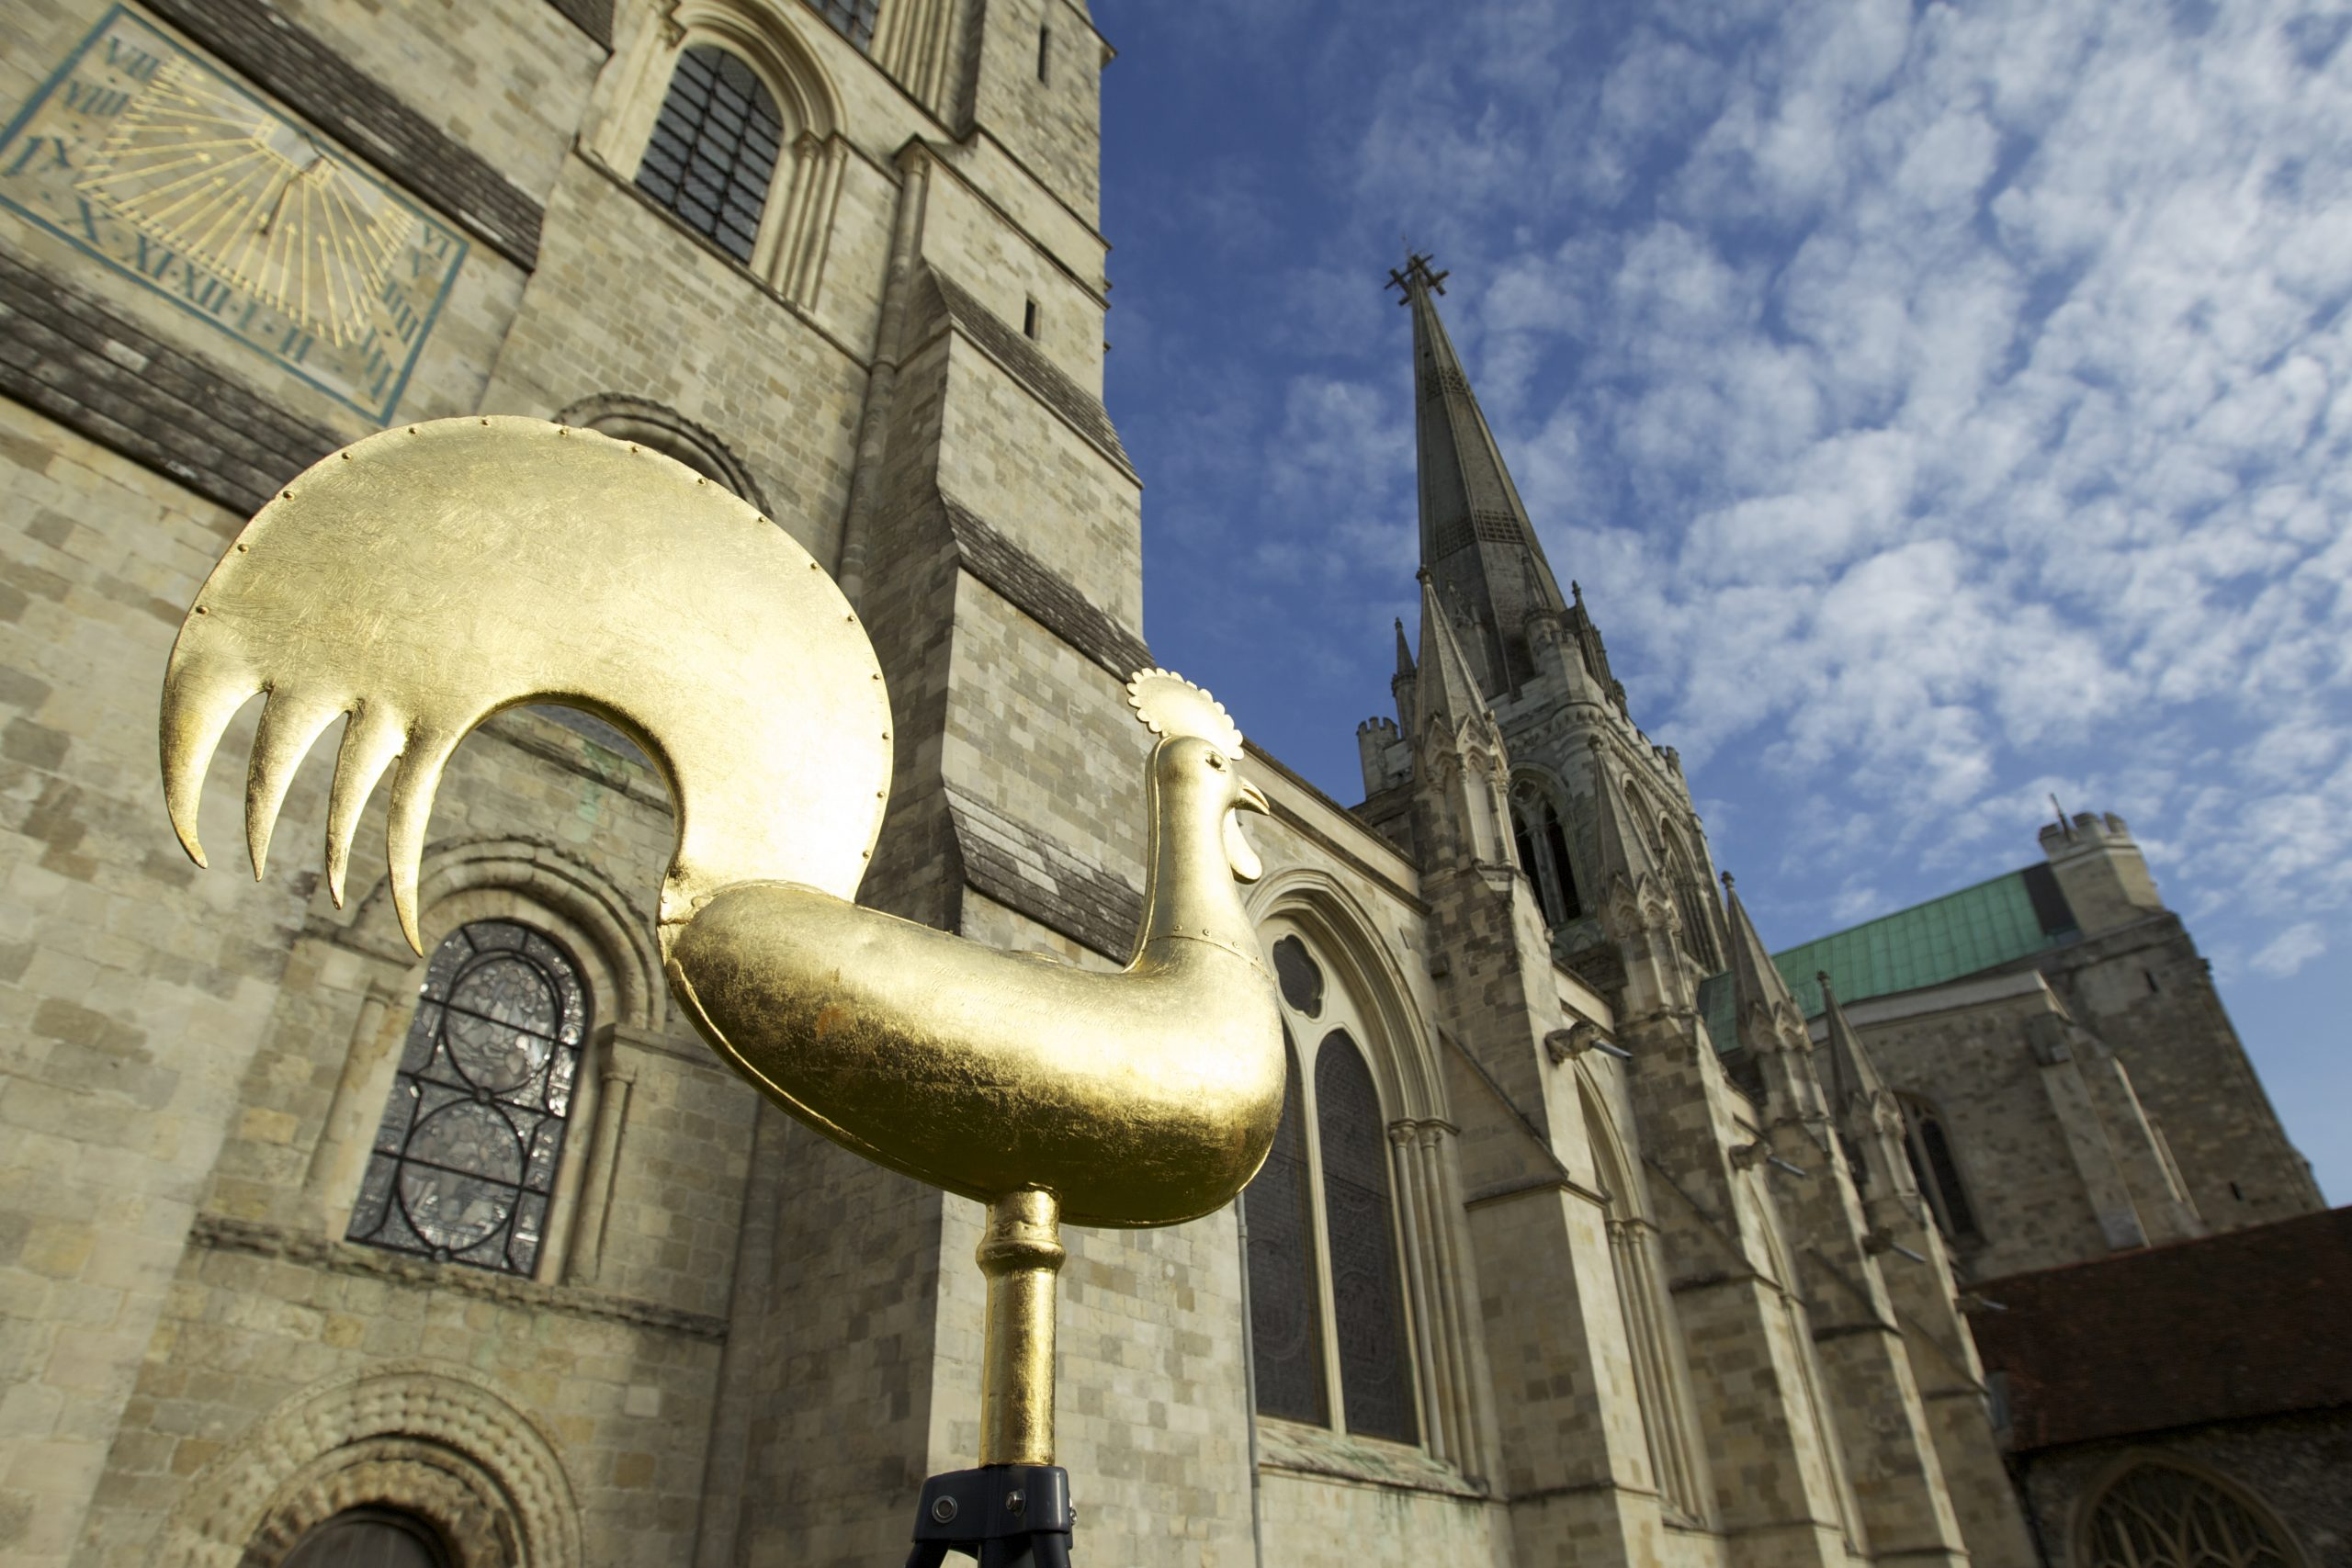 Fairtrade Gold Leaf weather vane that now sits on top of Chichester Cathedral